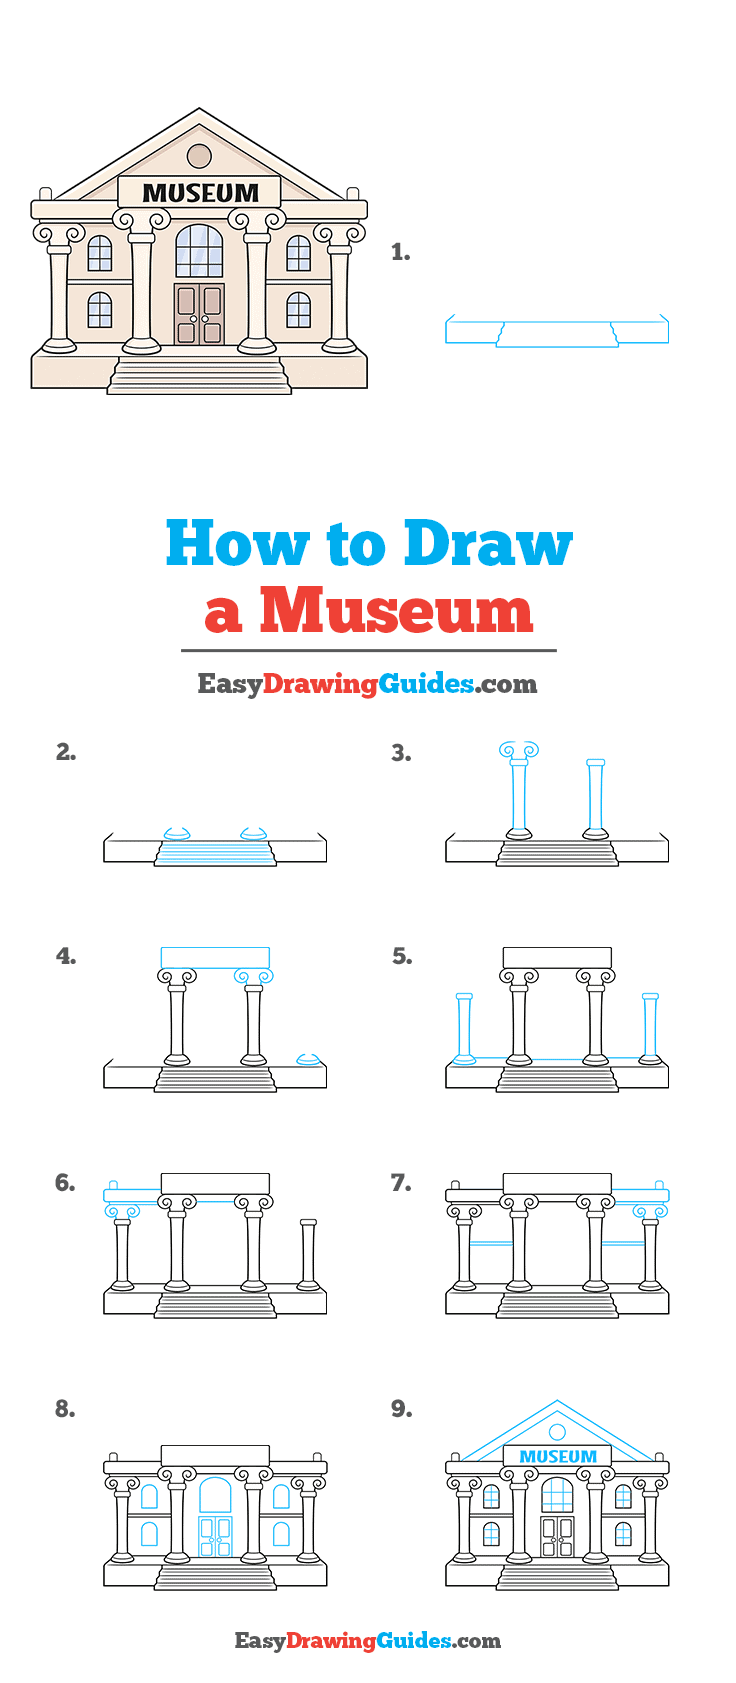 How to Draw a Museum Step by Step Tutorial Image